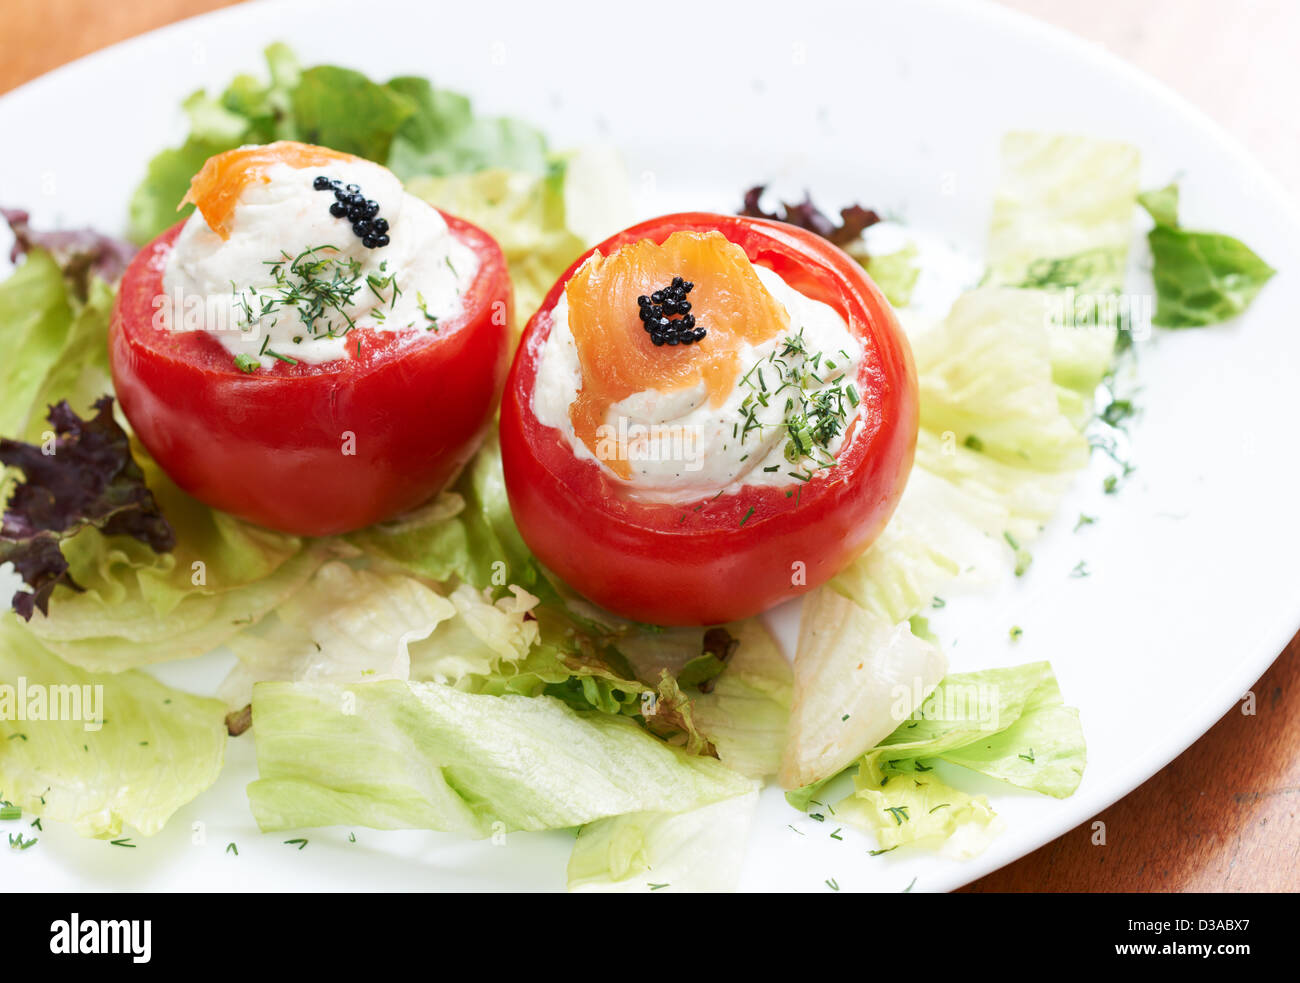 Tomatoes stiffed with roe spread and decorated with salmon fillet and black caviar - Stock Image